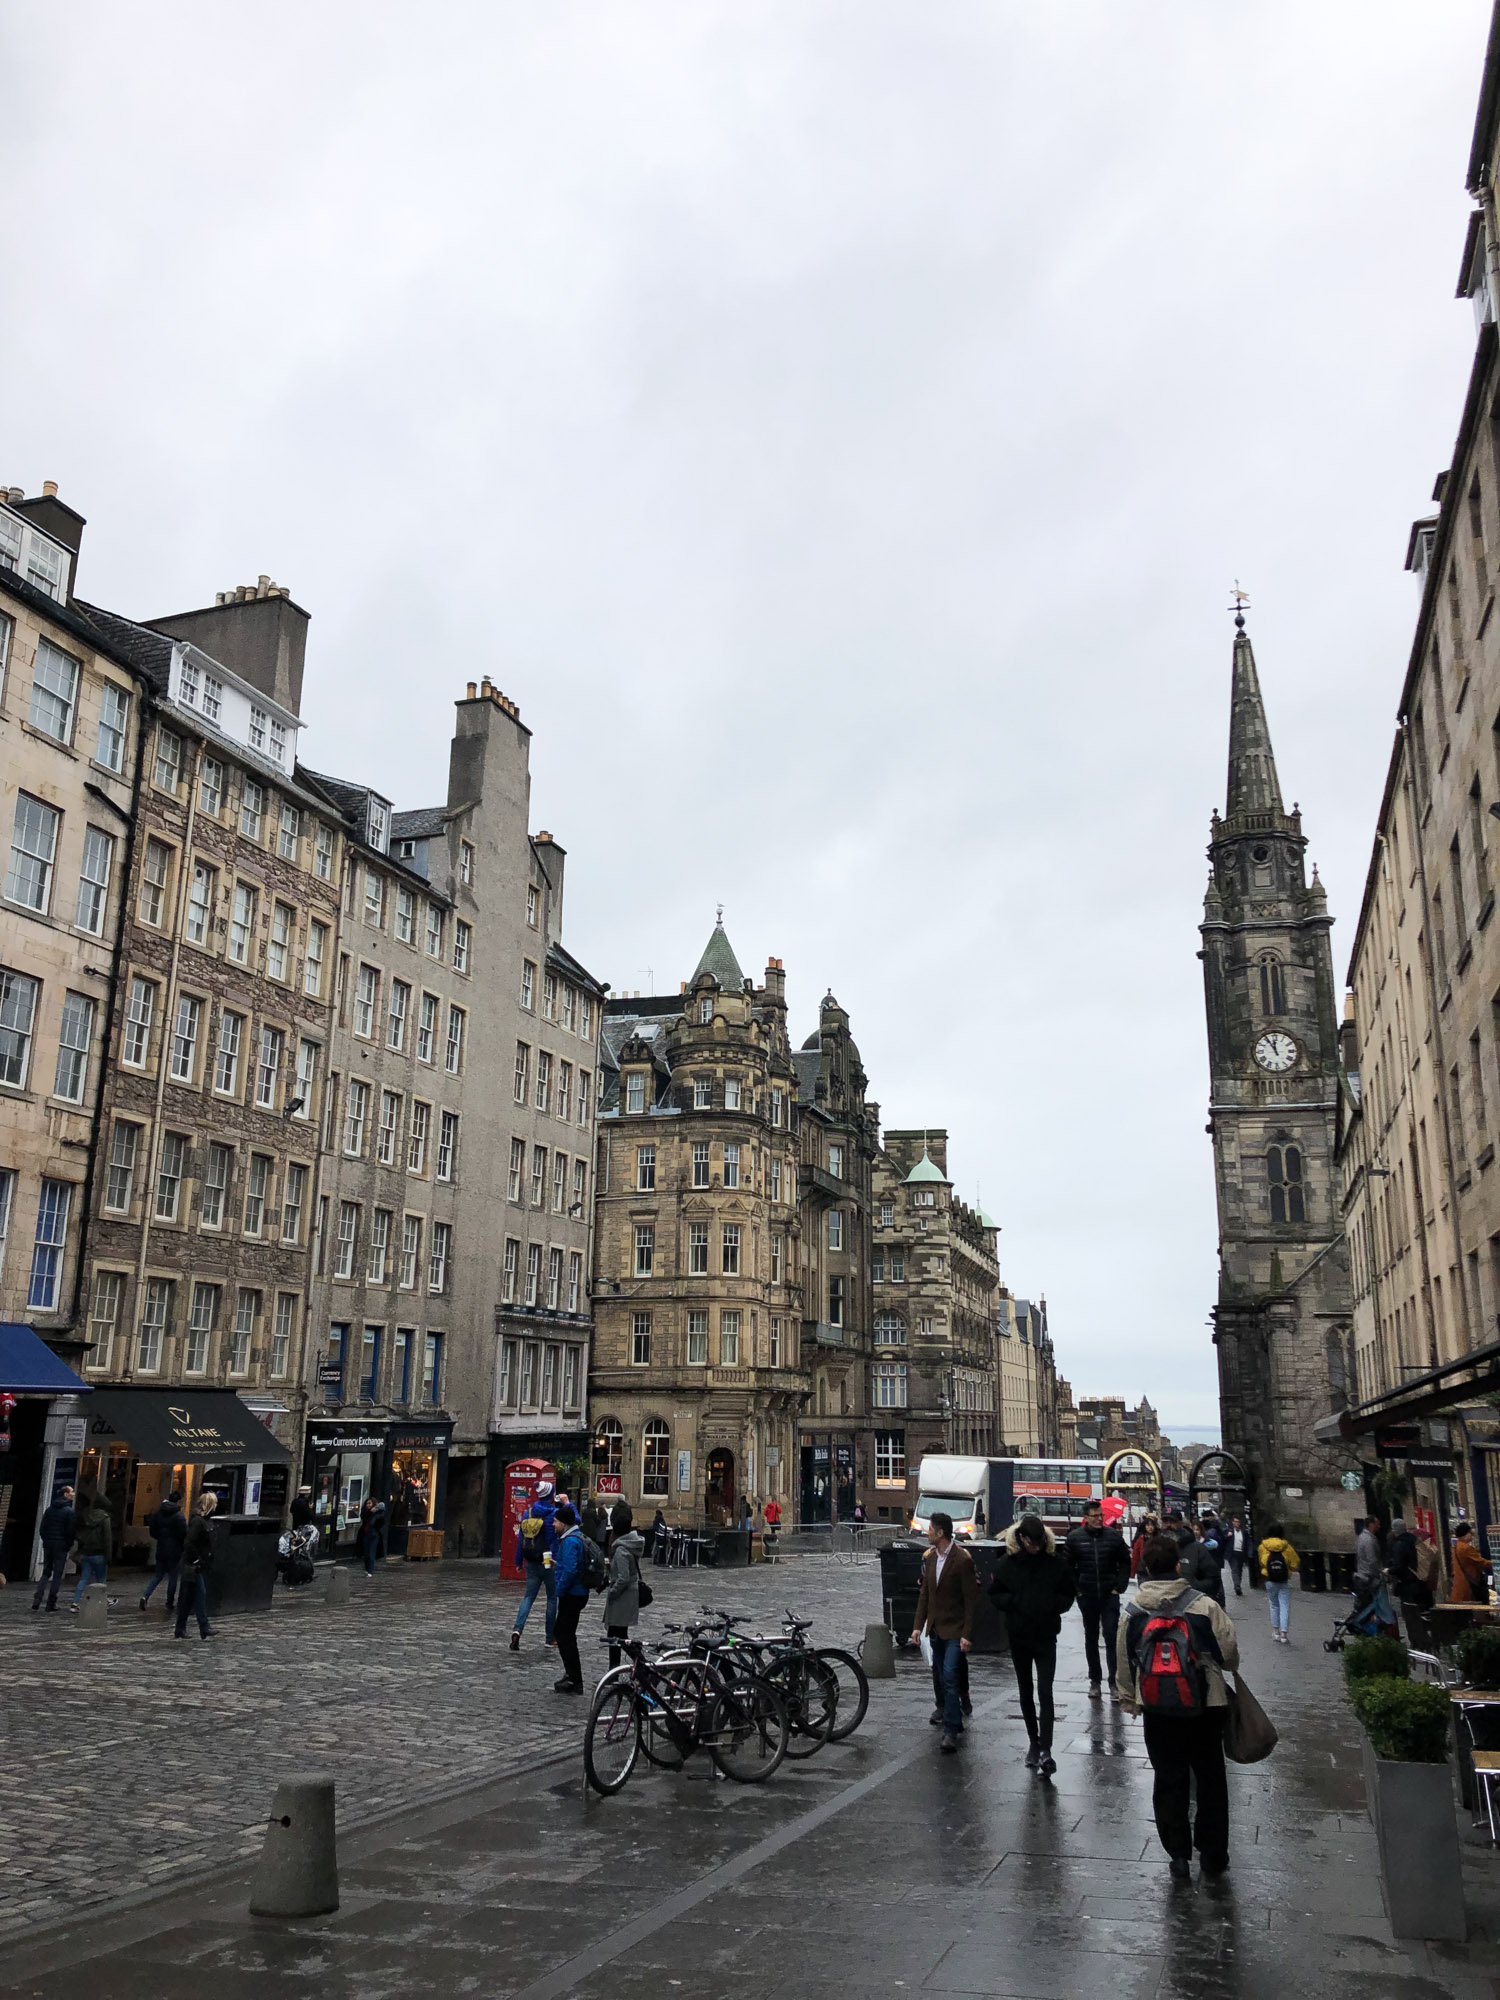 48 Hours in Edinburgh: What to do and see